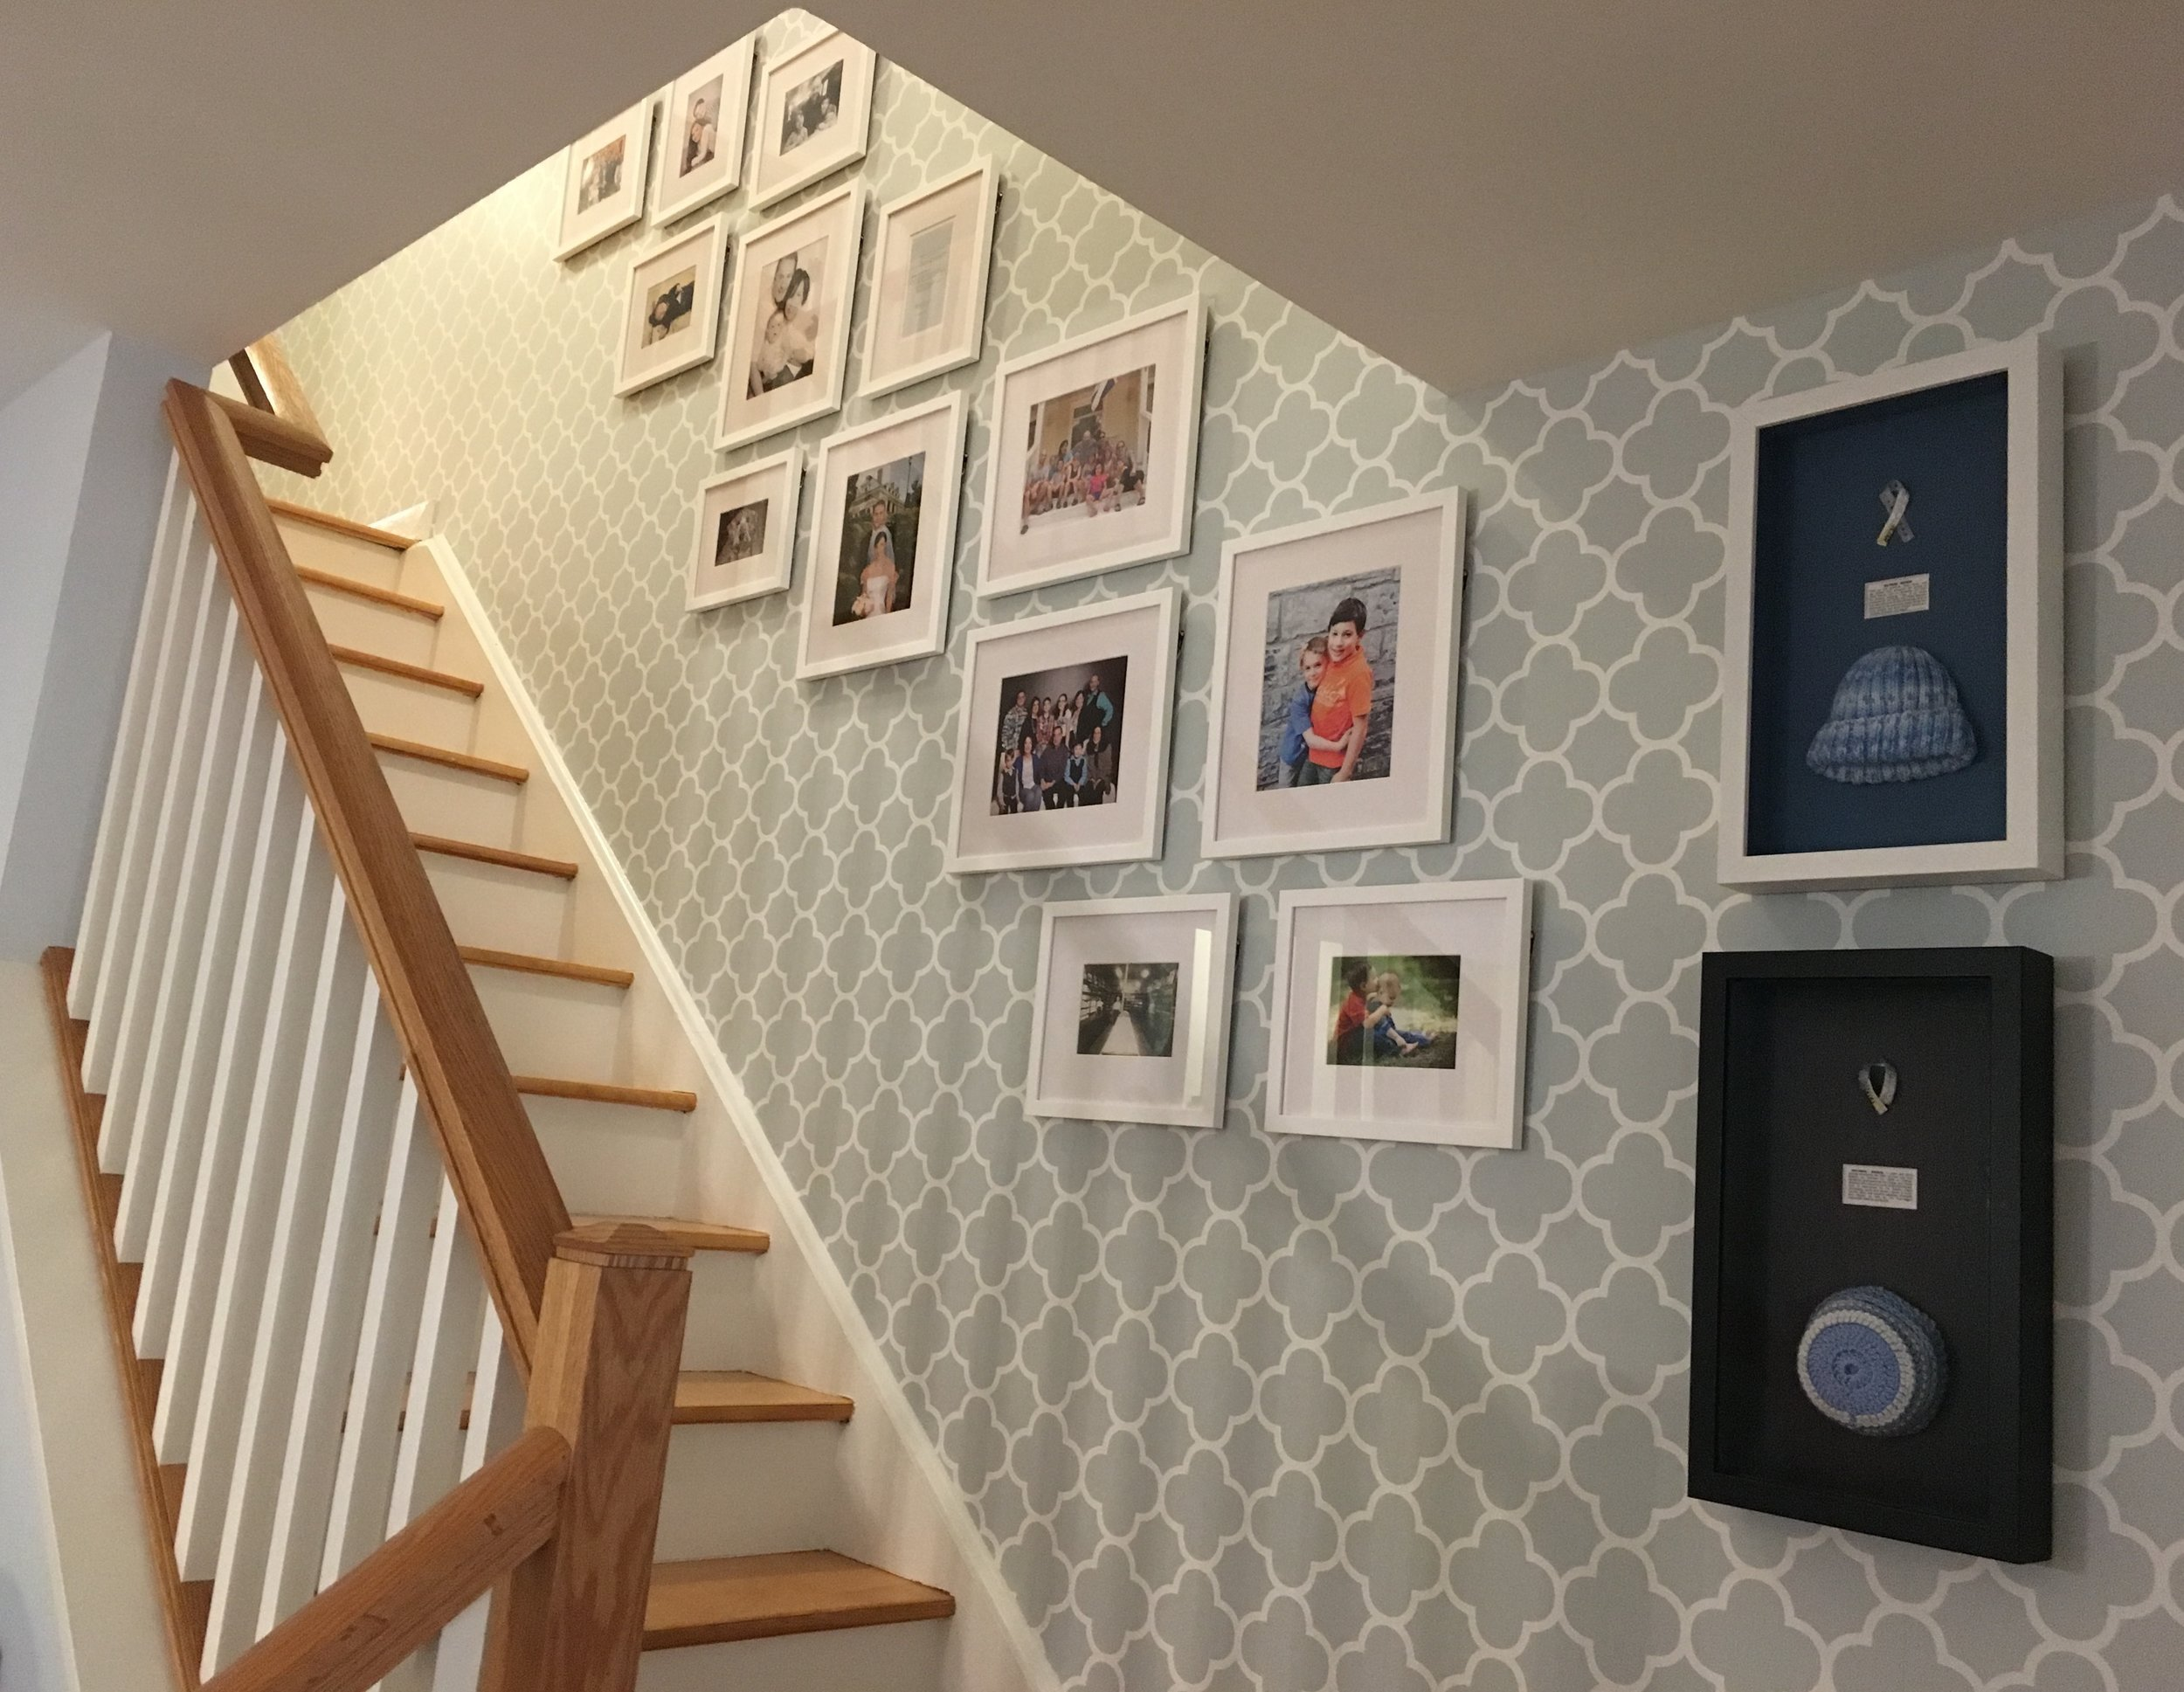 Framed family portraits going up the staircase